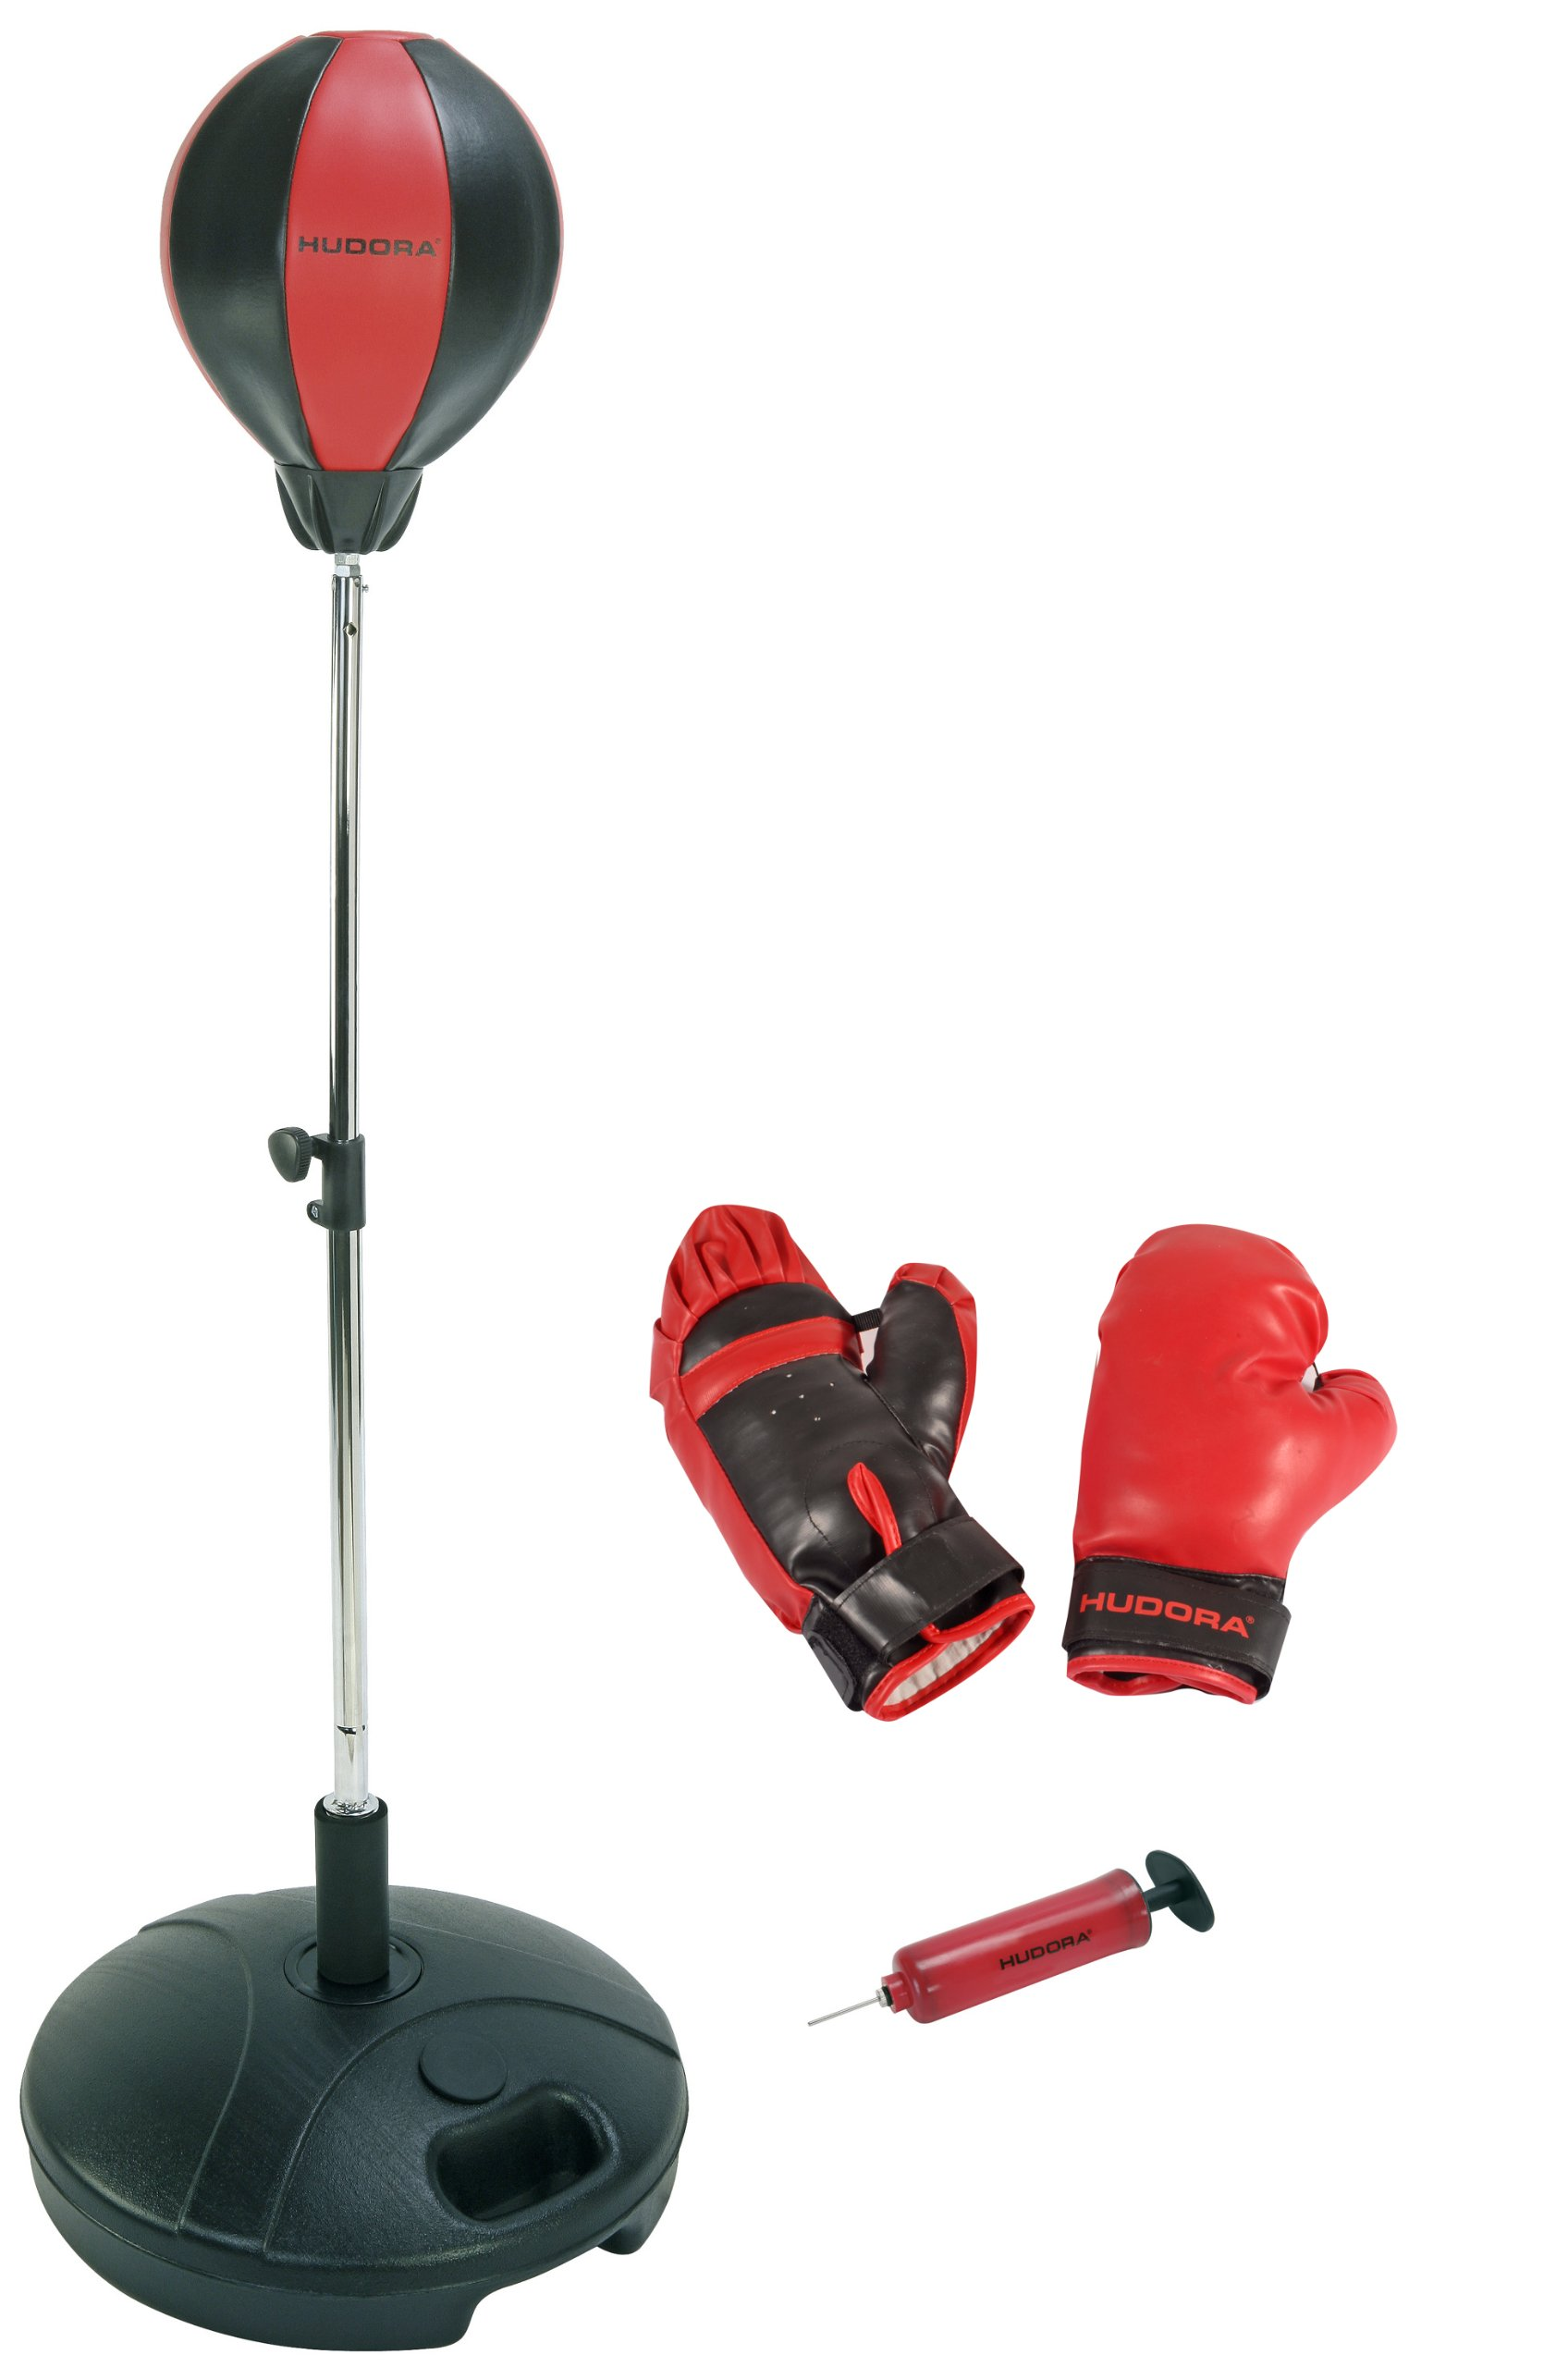 HUDORA Punching Ball With Boxing Gloves And Pump by